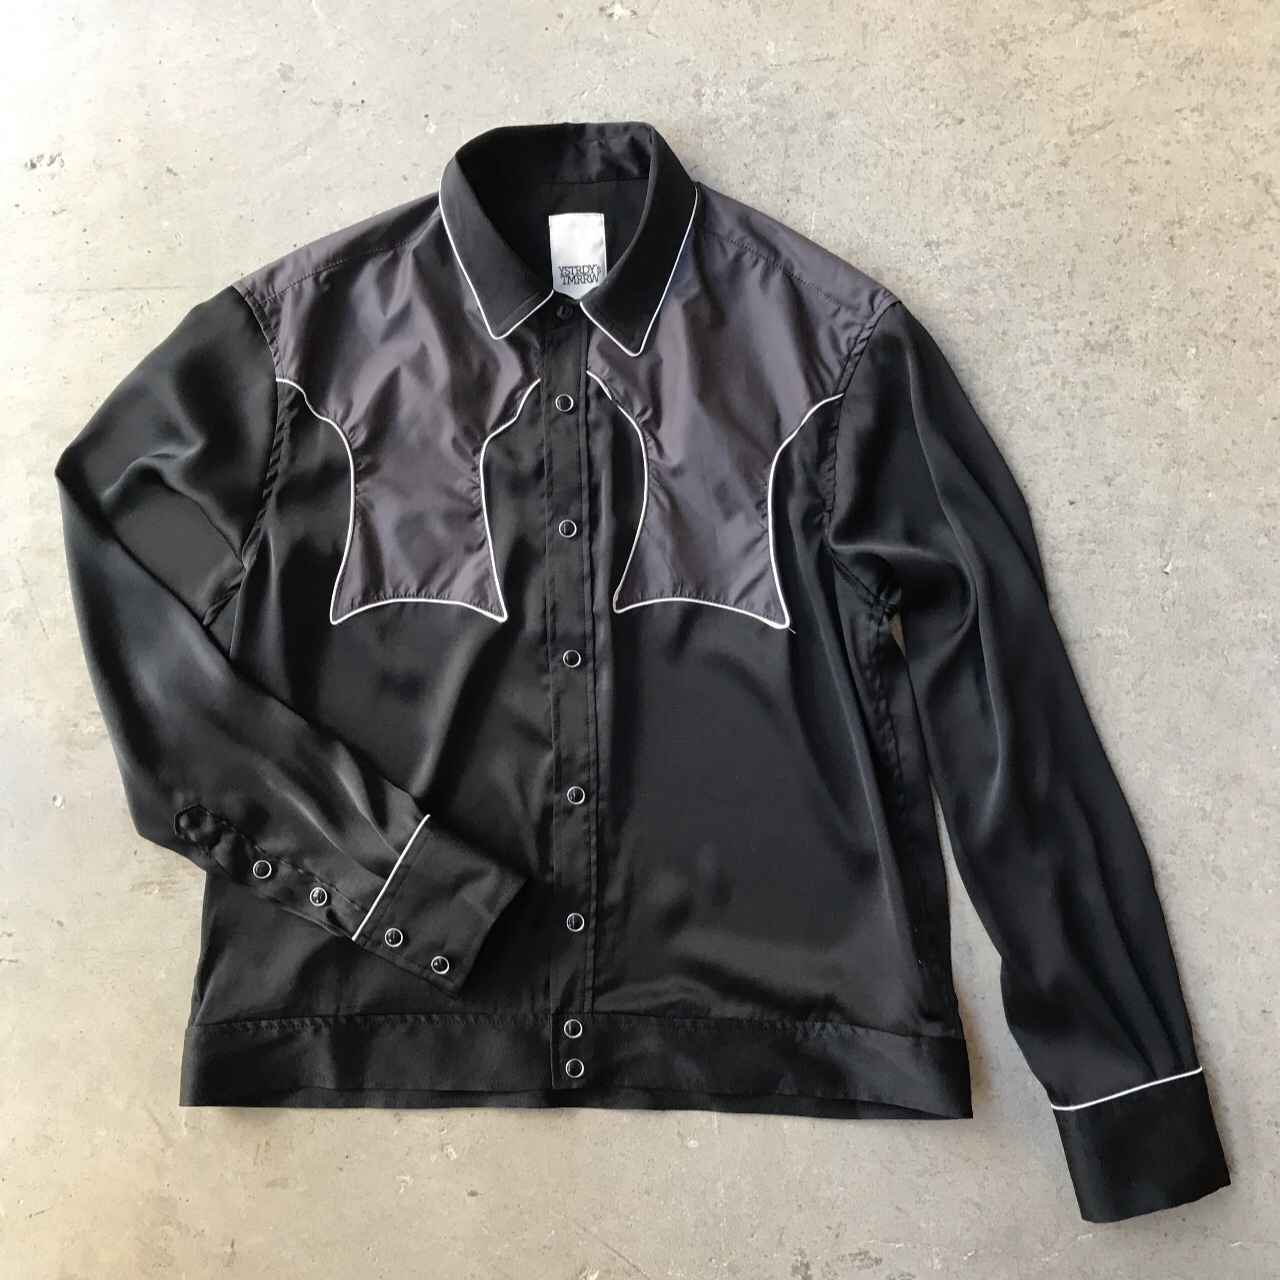 YSTRDY'S TMRRW - SATIN RODEO SHIRT